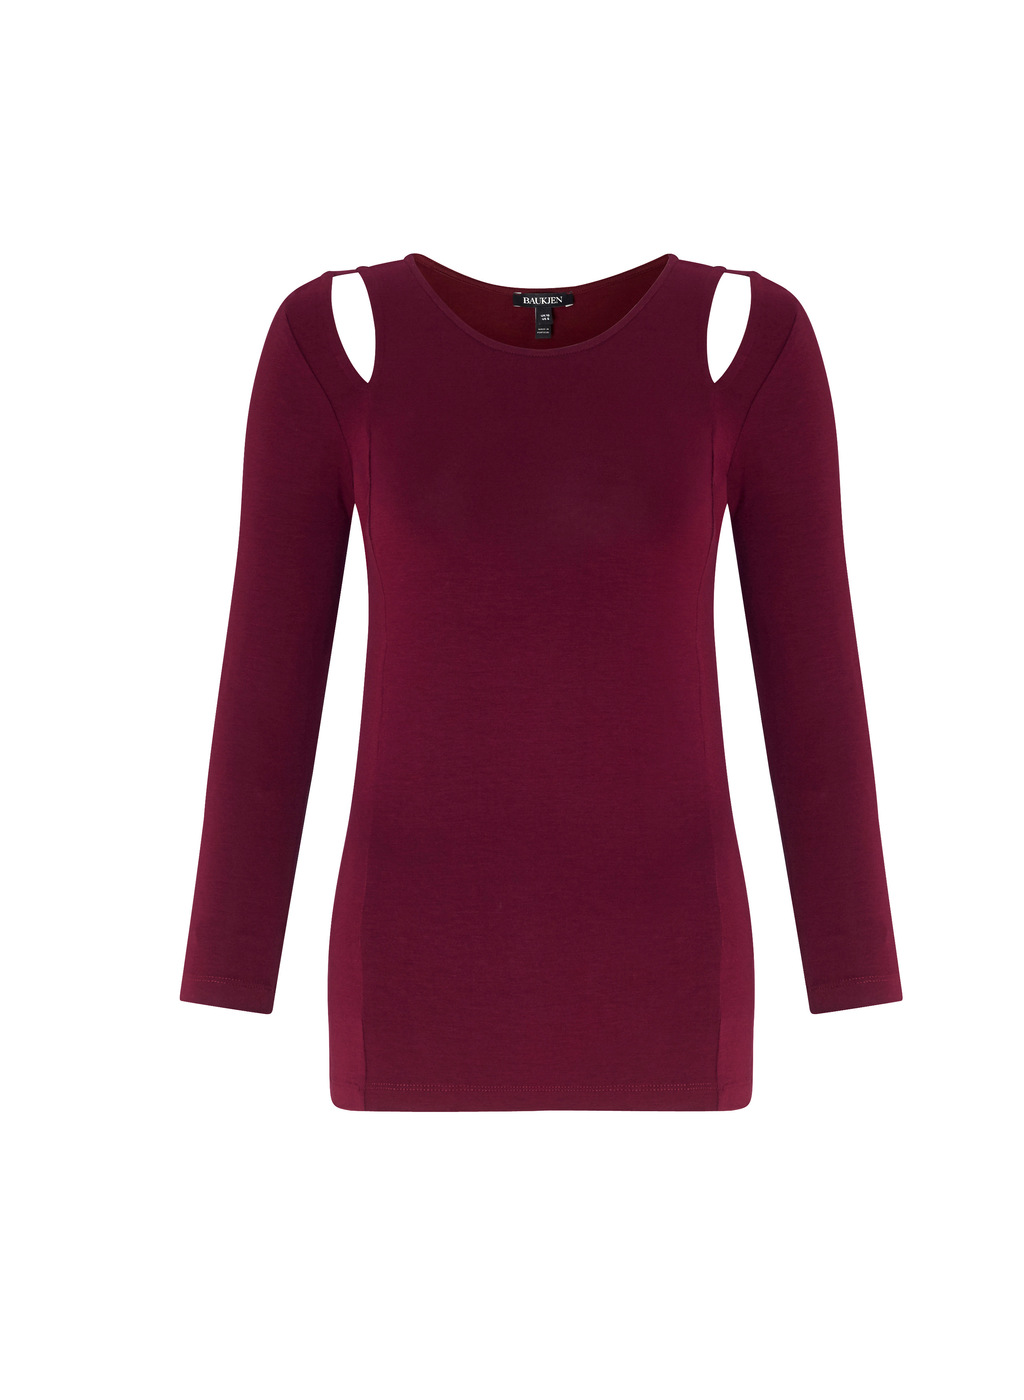 Womenswear Henwood Top - pattern: plain; predominant colour: burgundy; occasions: casual; length: standard; style: top; fibres: viscose/rayon - stretch; fit: body skimming; neckline: crew; sleeve length: 3/4 length; sleeve style: standard; pattern type: fabric; texture group: jersey - stretchy/drapey; season: a/w 2016; wardrobe: highlight